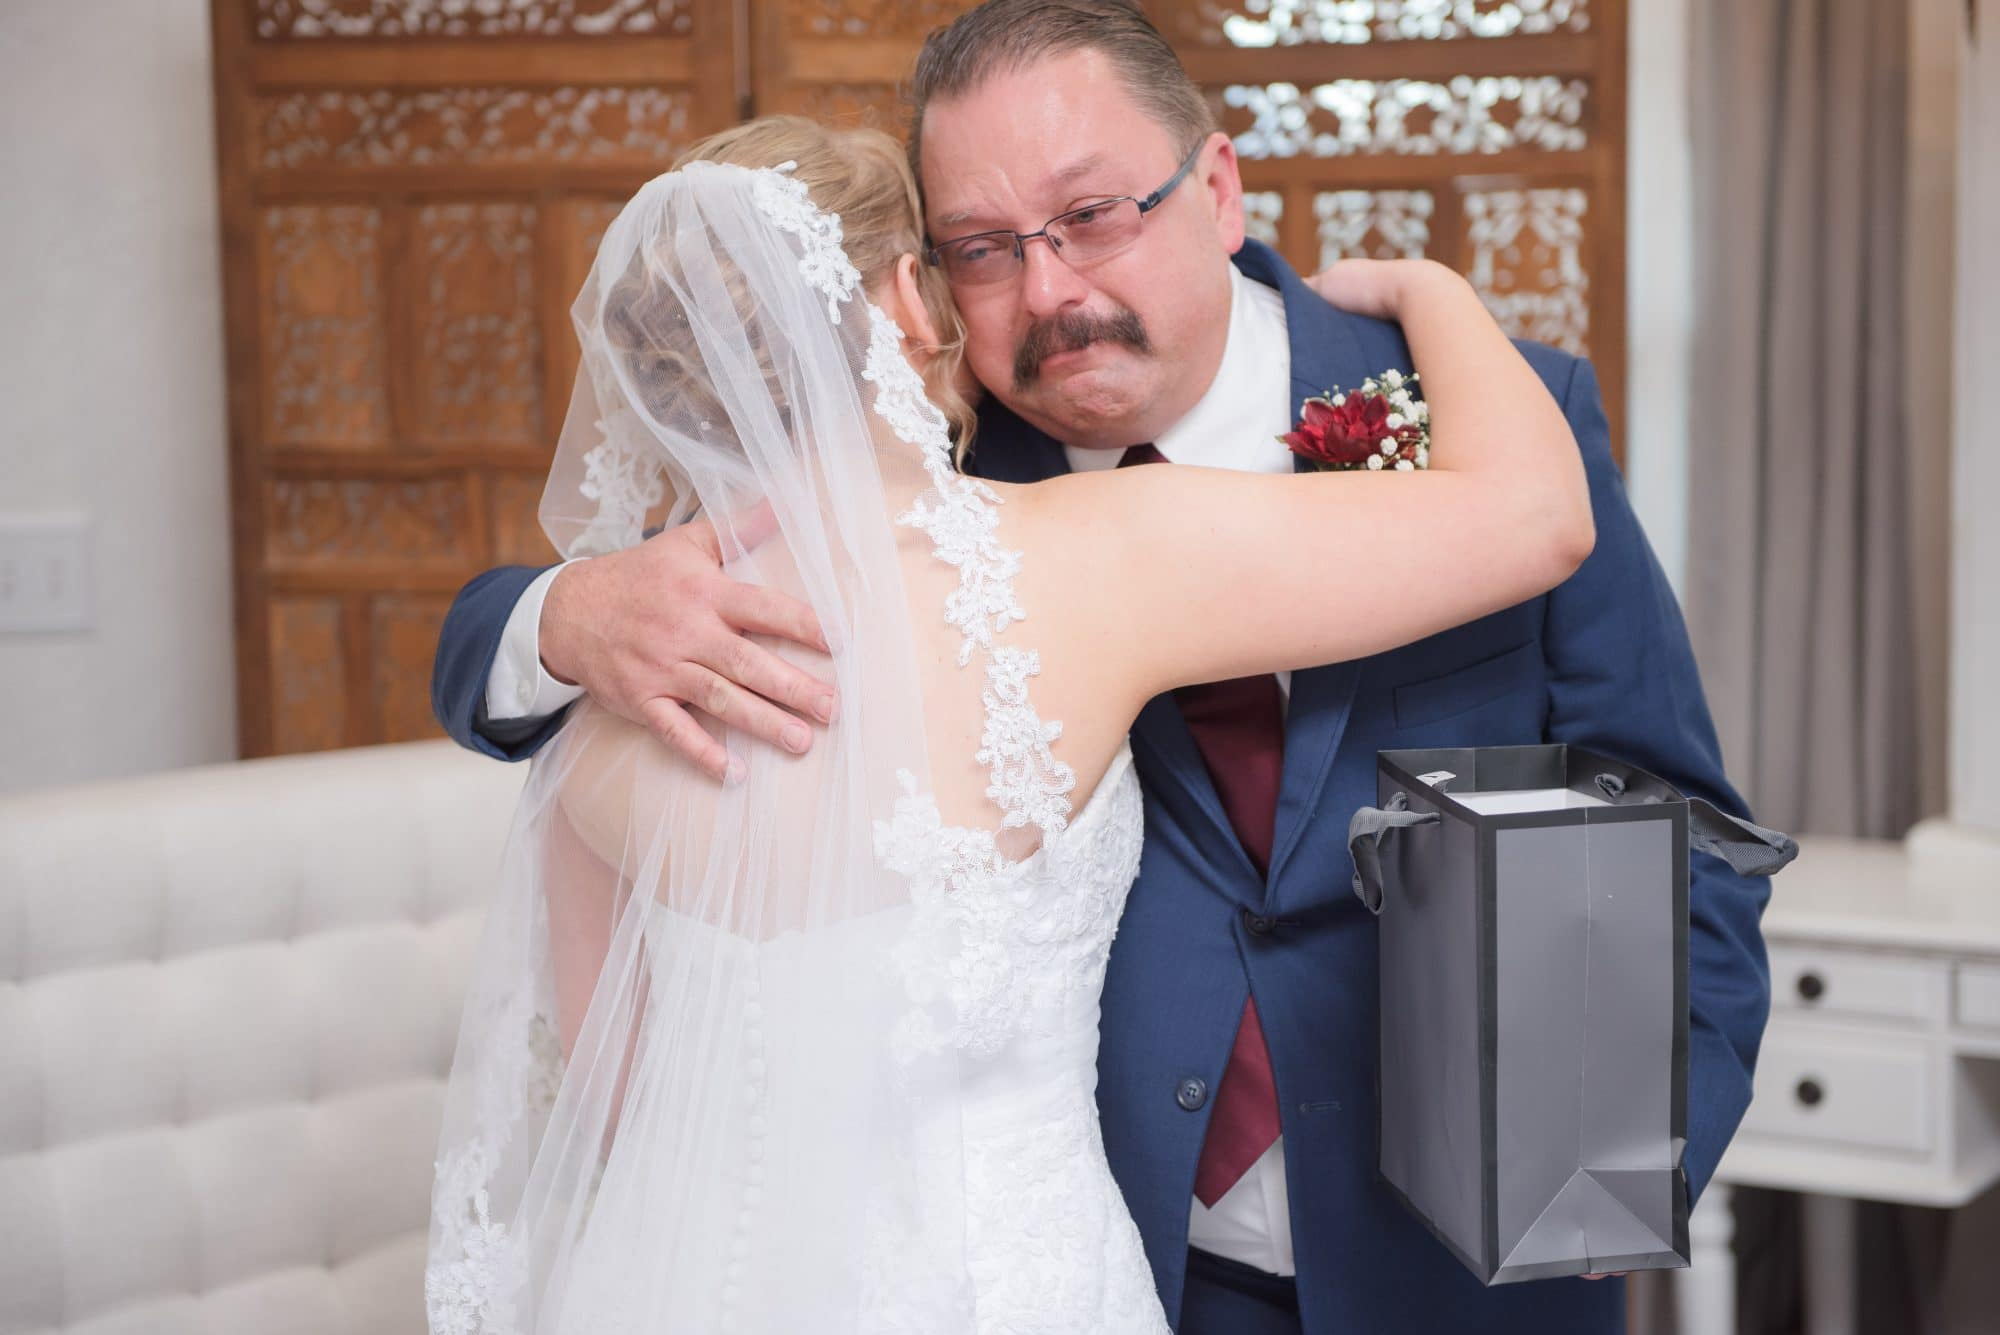 Brittany hugging with emotional dad